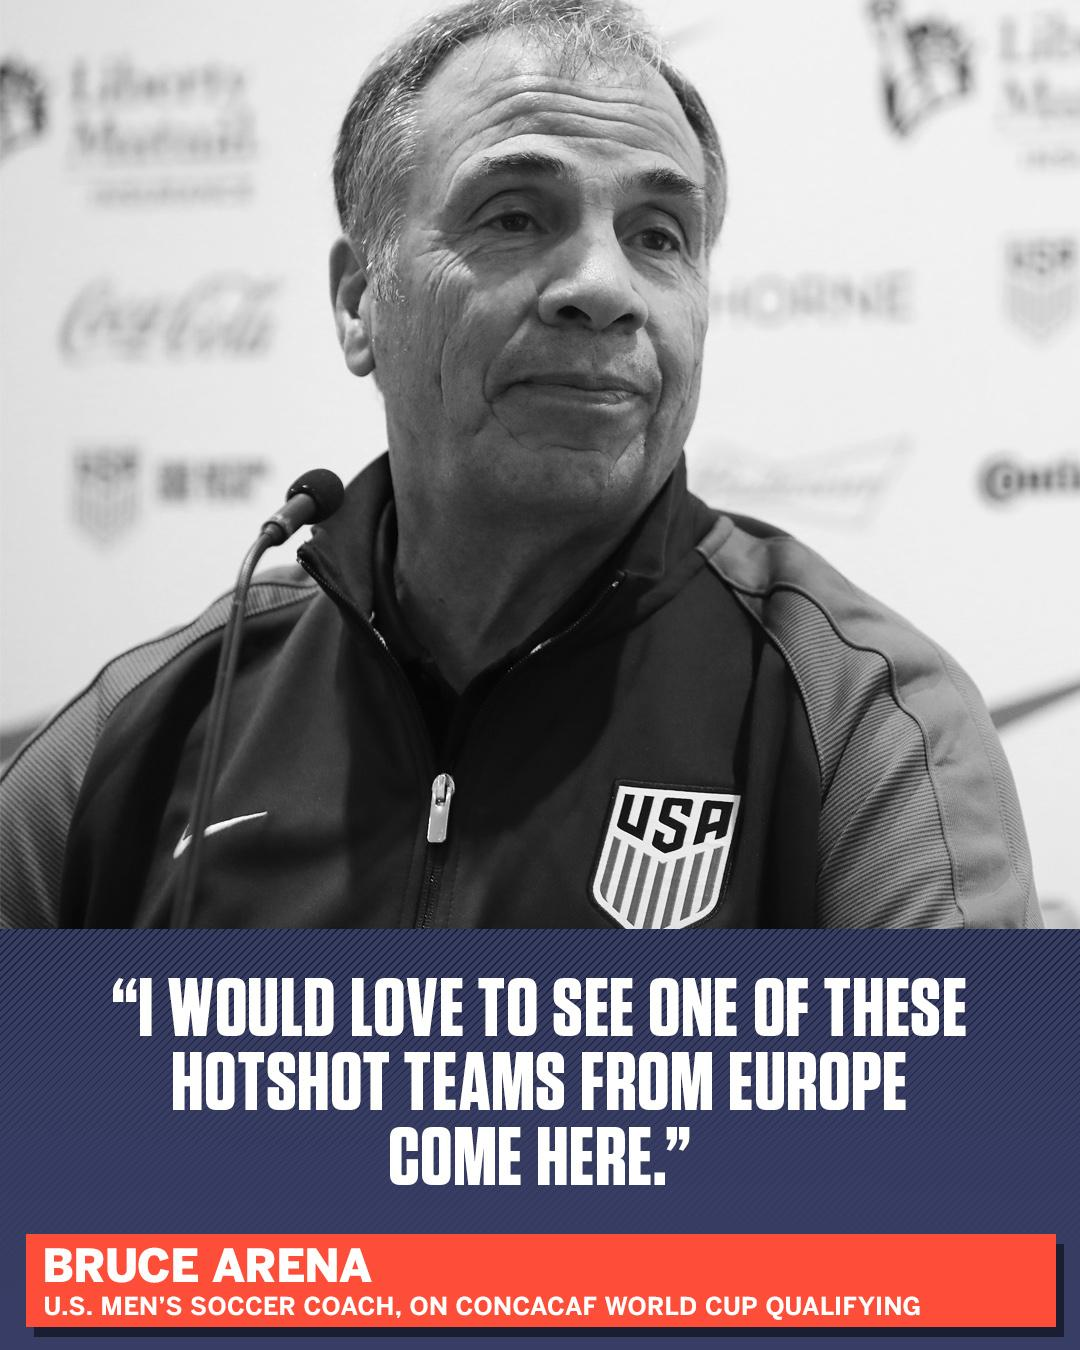 To Bruce Arena, there's nothing easy about CONCACAF World Cup qualifying. https://t.co/sRGGi1F6w8